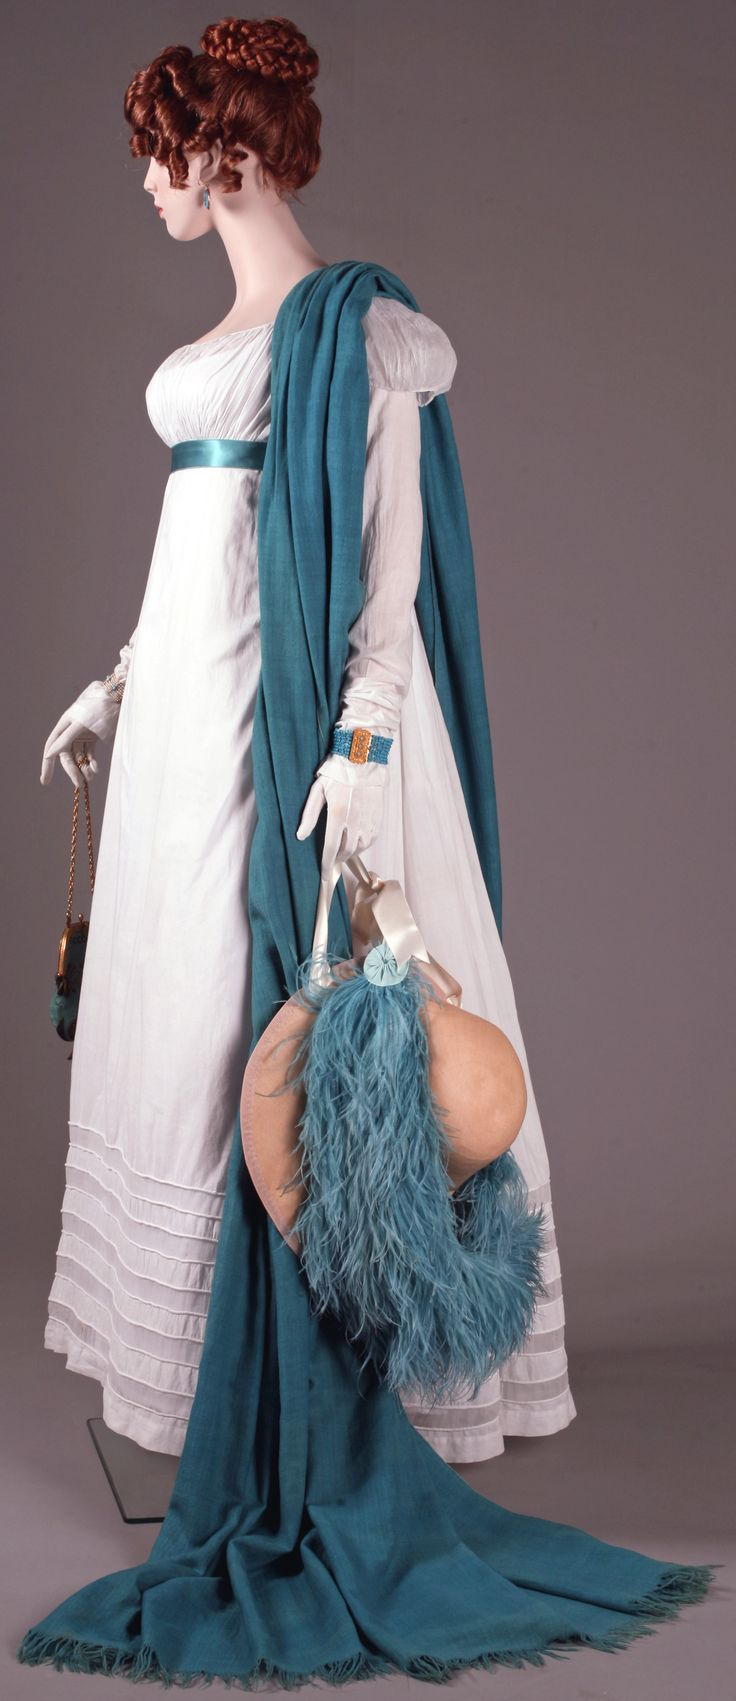 "Annette, from ""Napoleon and the Empire of Fashion"" exhibition. Dress. Cotton percale, cotton muslin, cording, France or England 1814-15. Shawl, cashmere, England, first quarter of the XIX century. Jewellery. Gold, turquoise and micro mosaic. Italy and England, first quarter of the XIX century. Bag. Vermeil, silk and gold tricot, gold bullion. France, circa 1808."